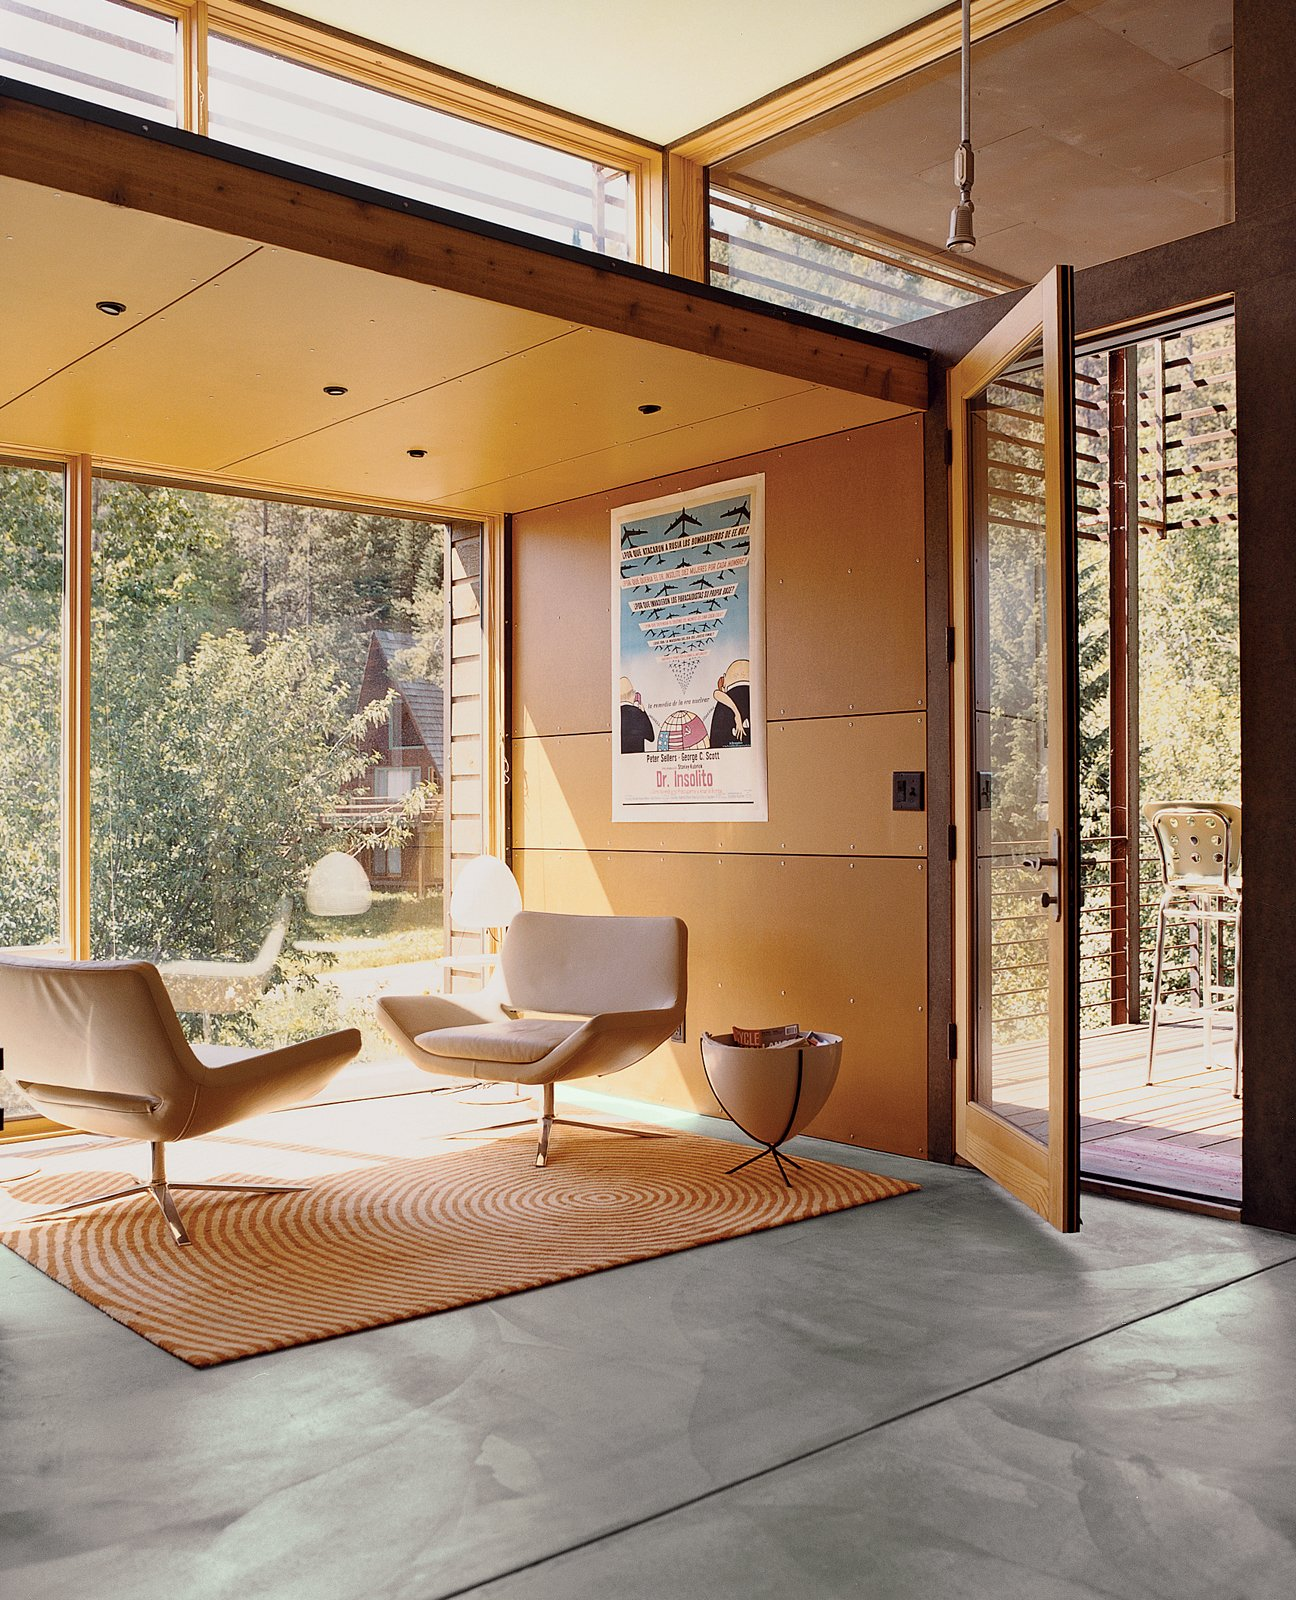 For the interior of the Stanwood residence, Logan returned to his minimalist palette of color and materials. The Stanwoods took particular zeal in furnishing the living area with a number of pieces from Limn in San Francisco, including a pair of B&B Italia chairs and a custom rug from Ligne Roset. Tagged: Living Room, Chair, Concrete Floor, and Rug Floor.  Photo 10 of 10 in Jackson, WY